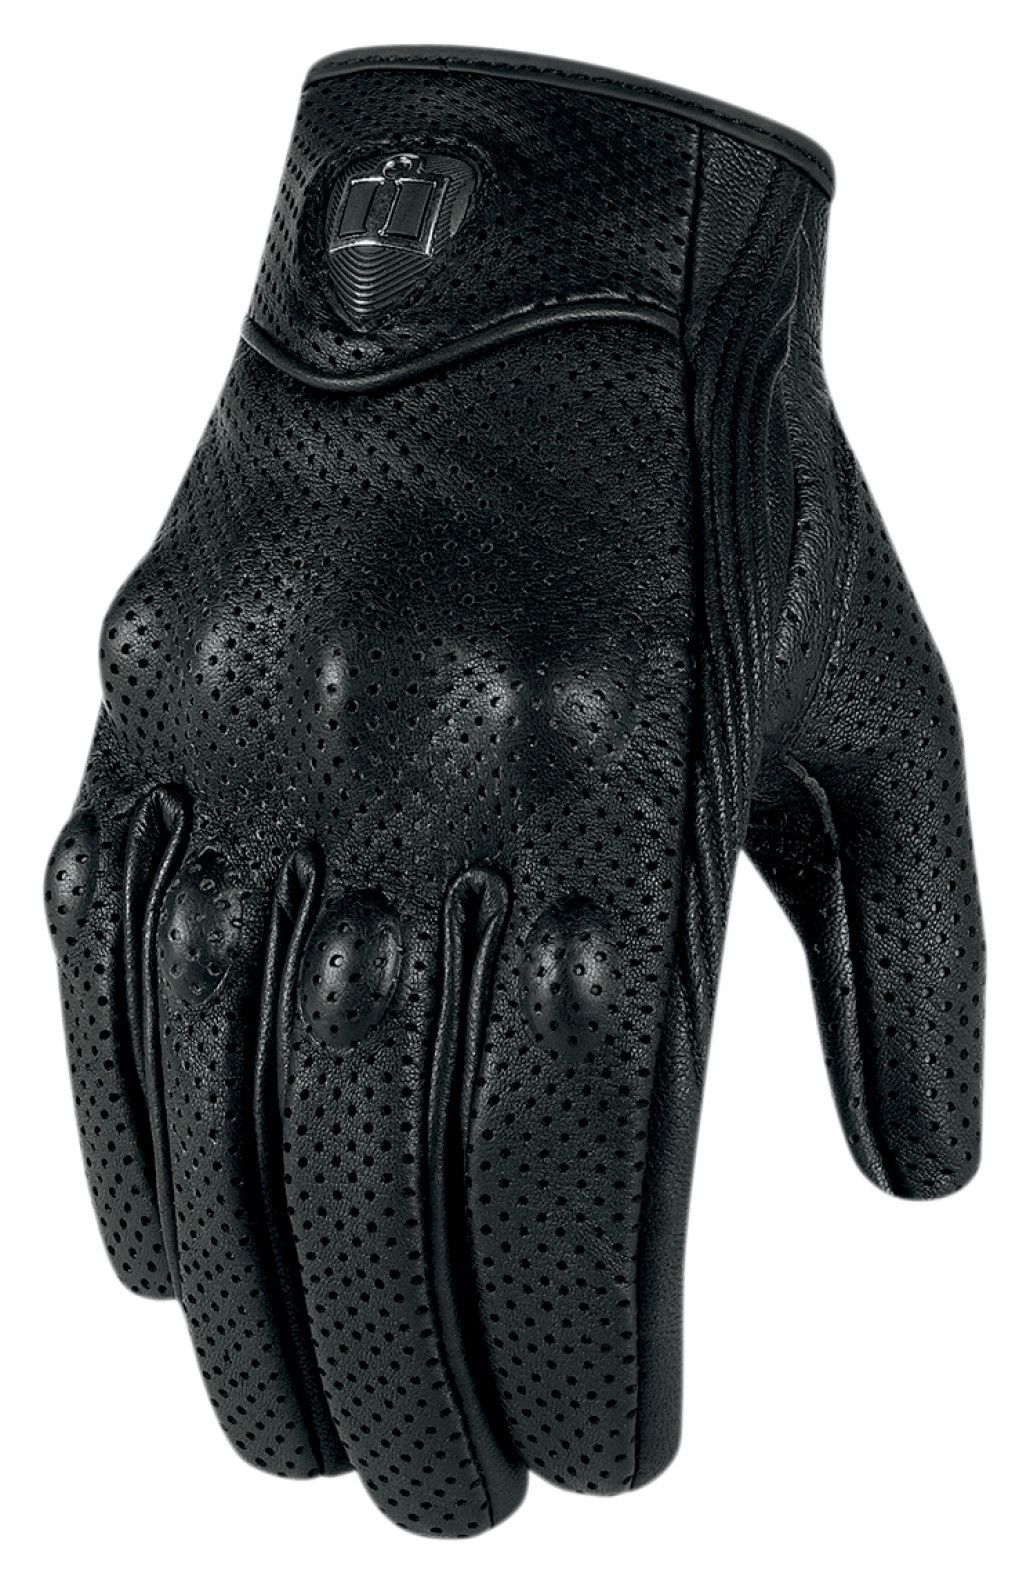 Good Motorcycle Gloves